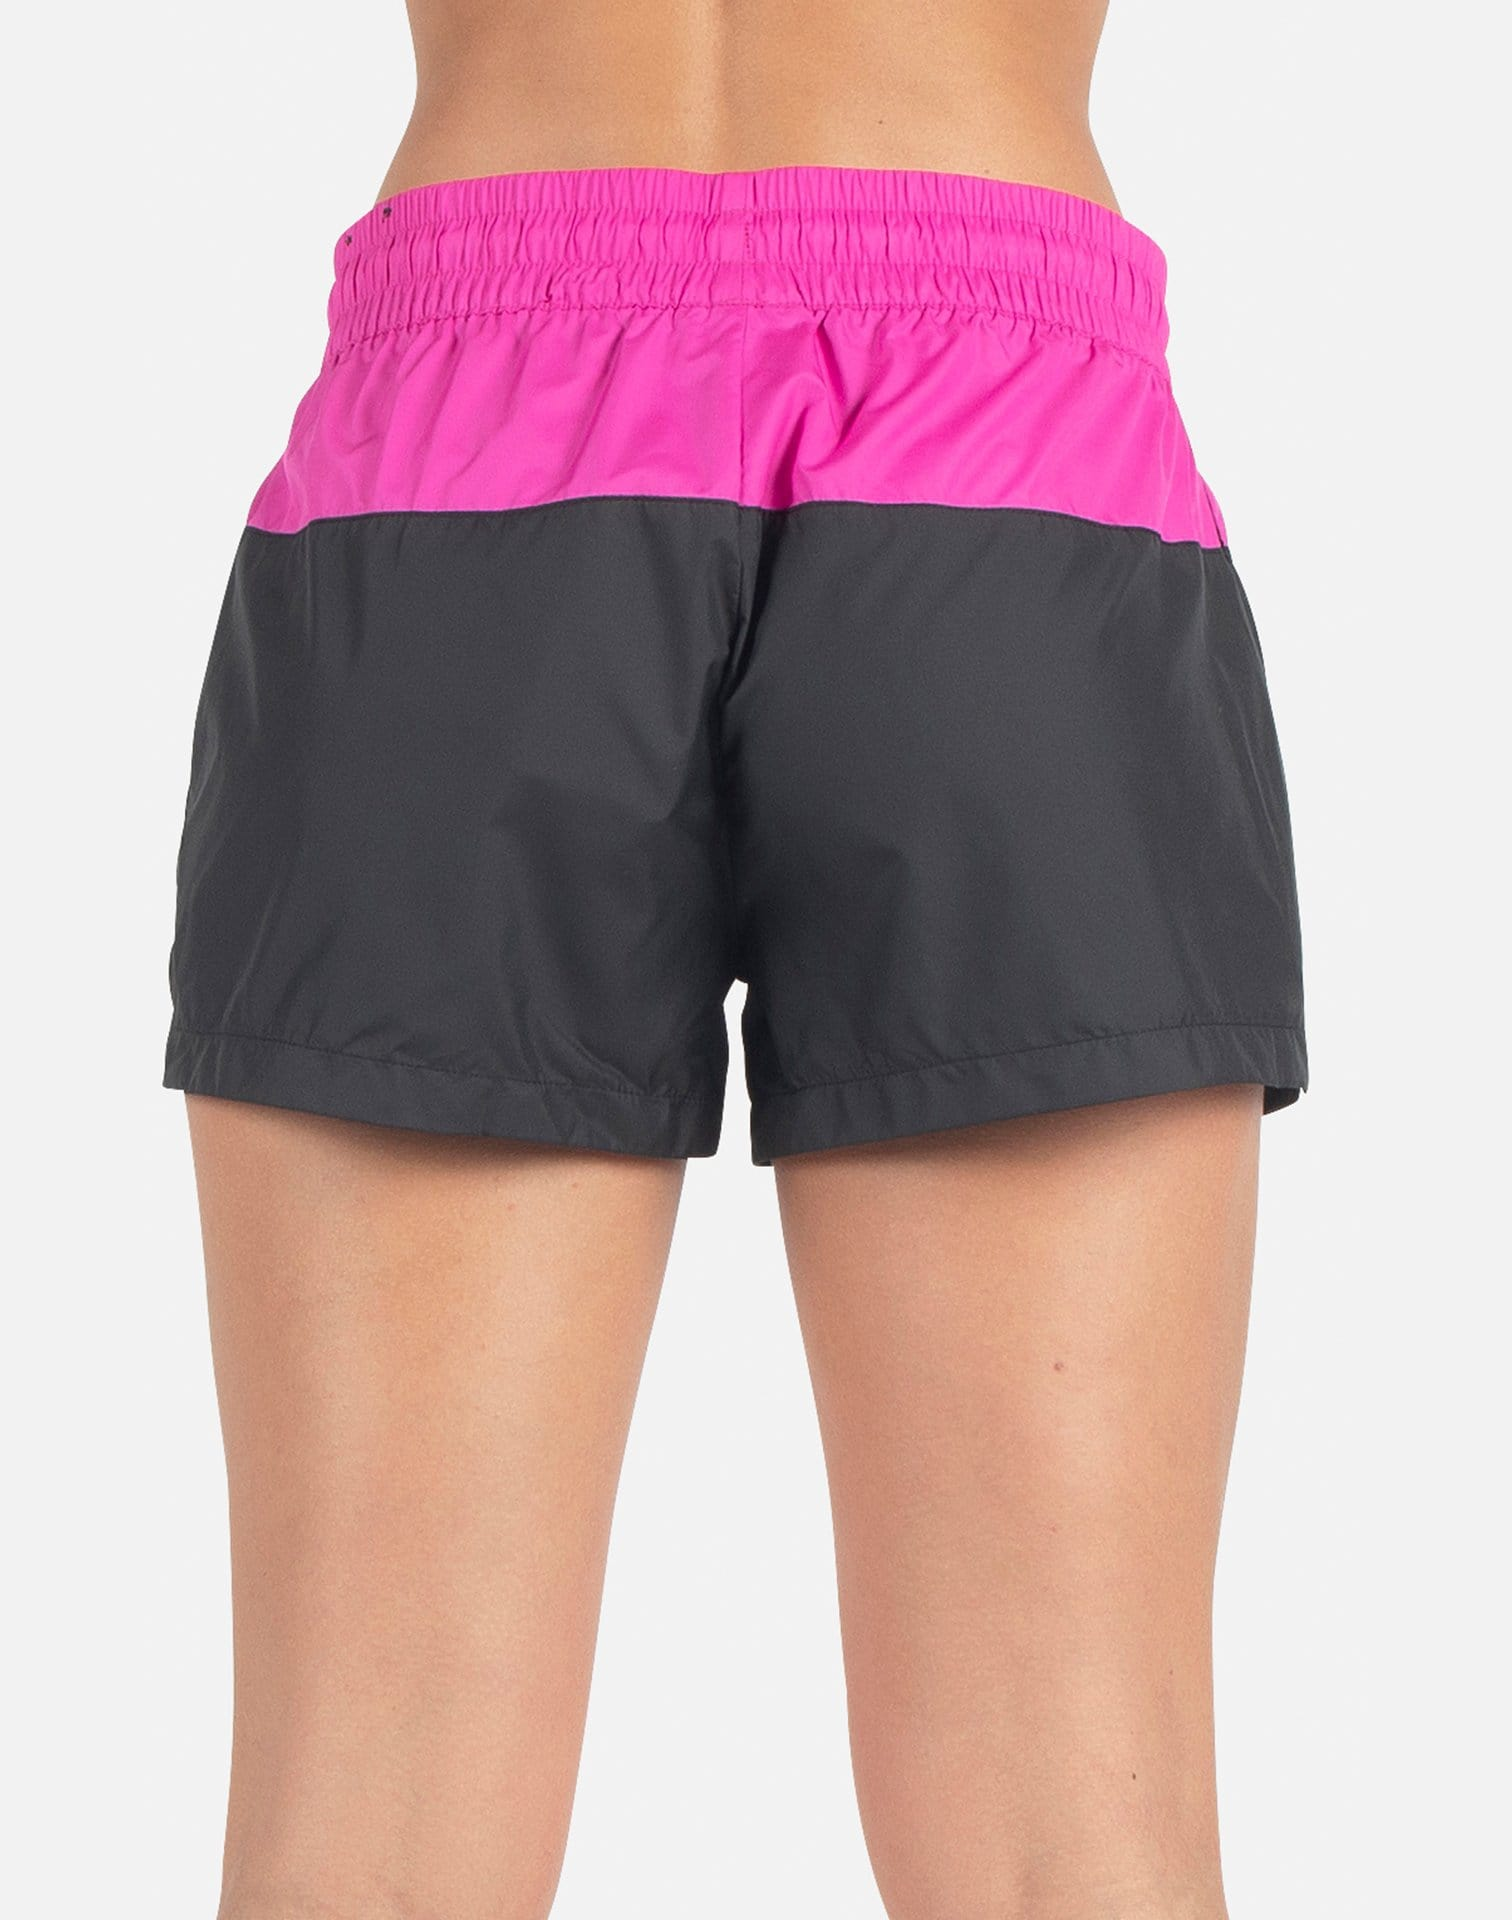 Nike Women's NSW Heritage Woven Shorts